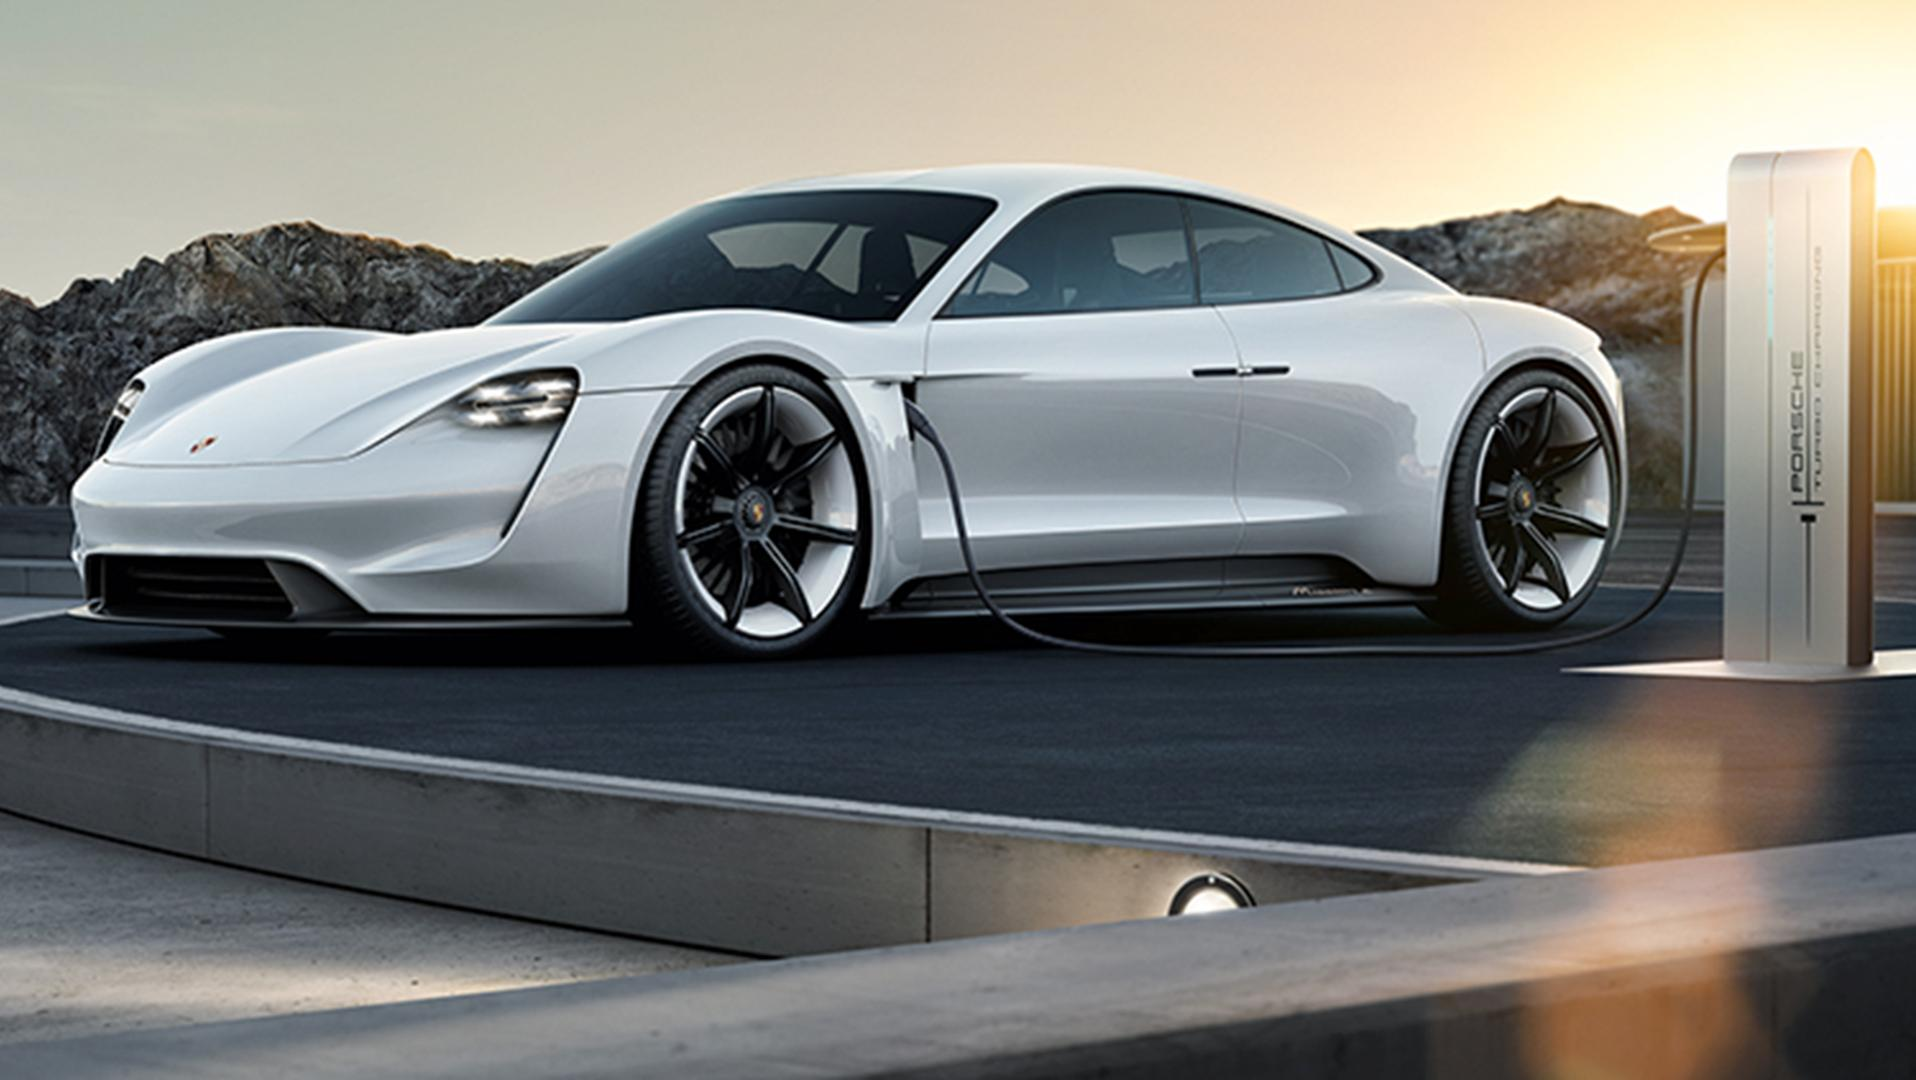 Porsche S Reservations For The Taycan Are A Sign That Tesla Is Accomplishing Its Mission